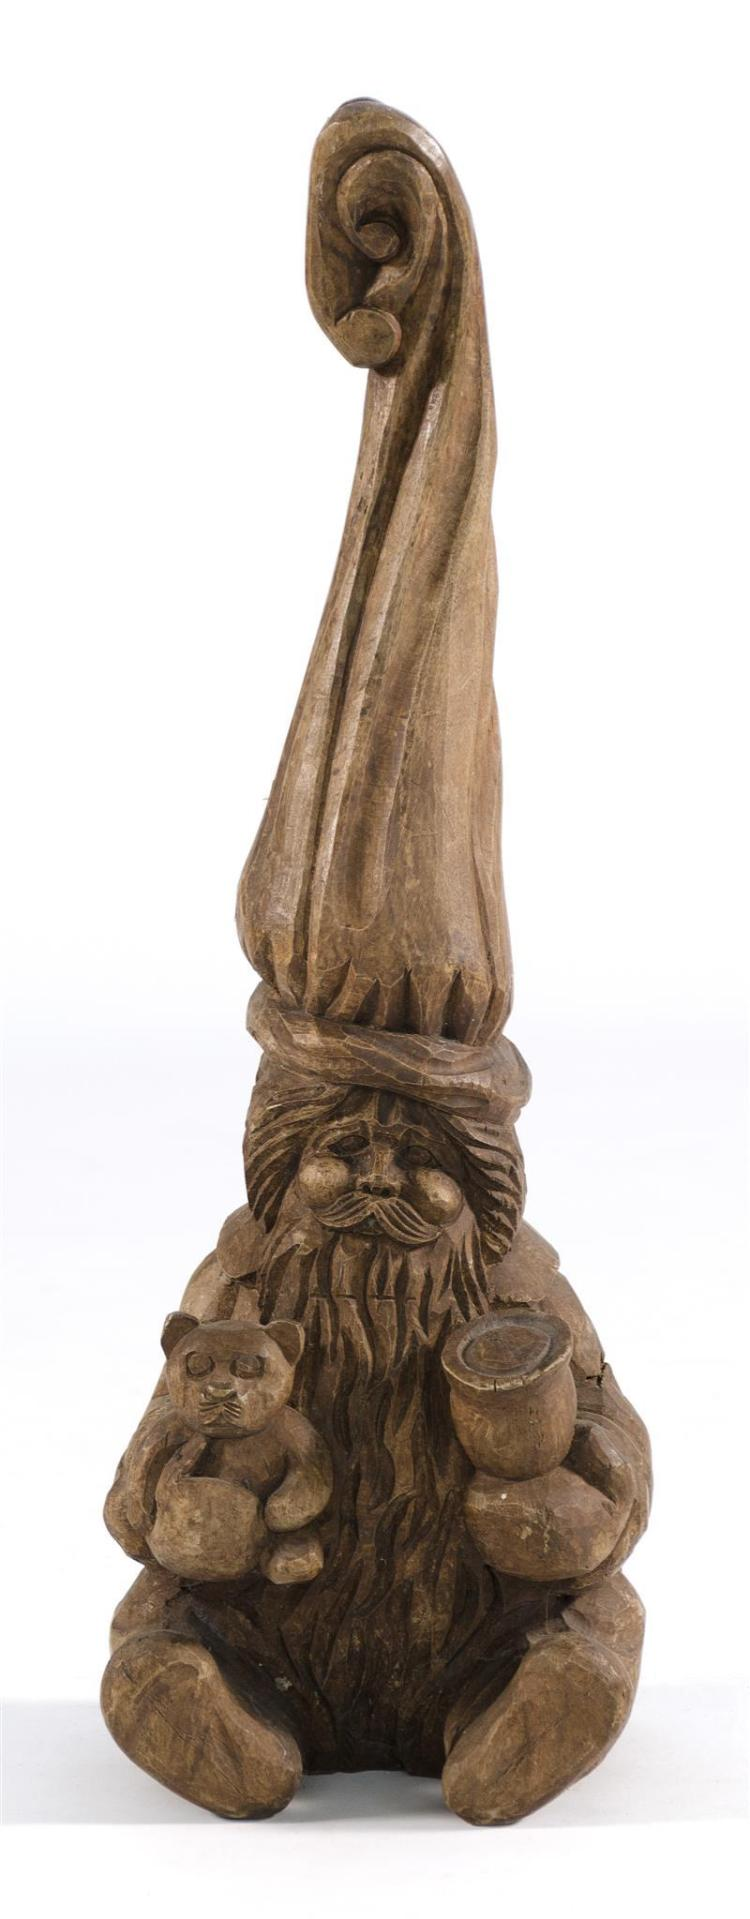 CARVED WOODEN FIGURE OF A GNOME HOLDING TOYS Height 24